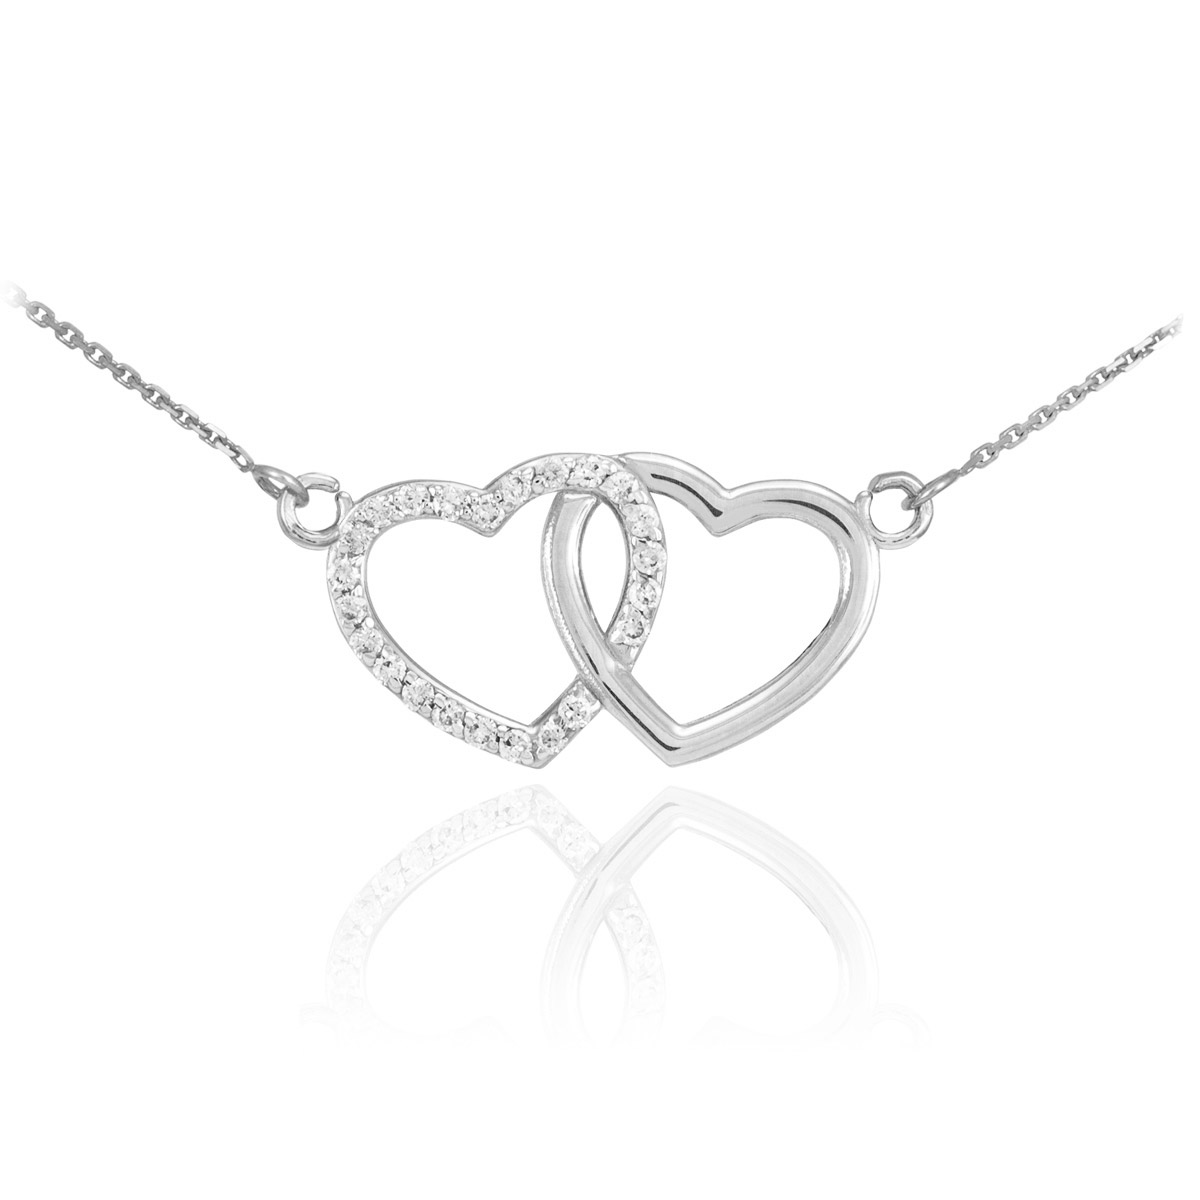 CZ Double Heart Pendant Necklace in Sterling Silver